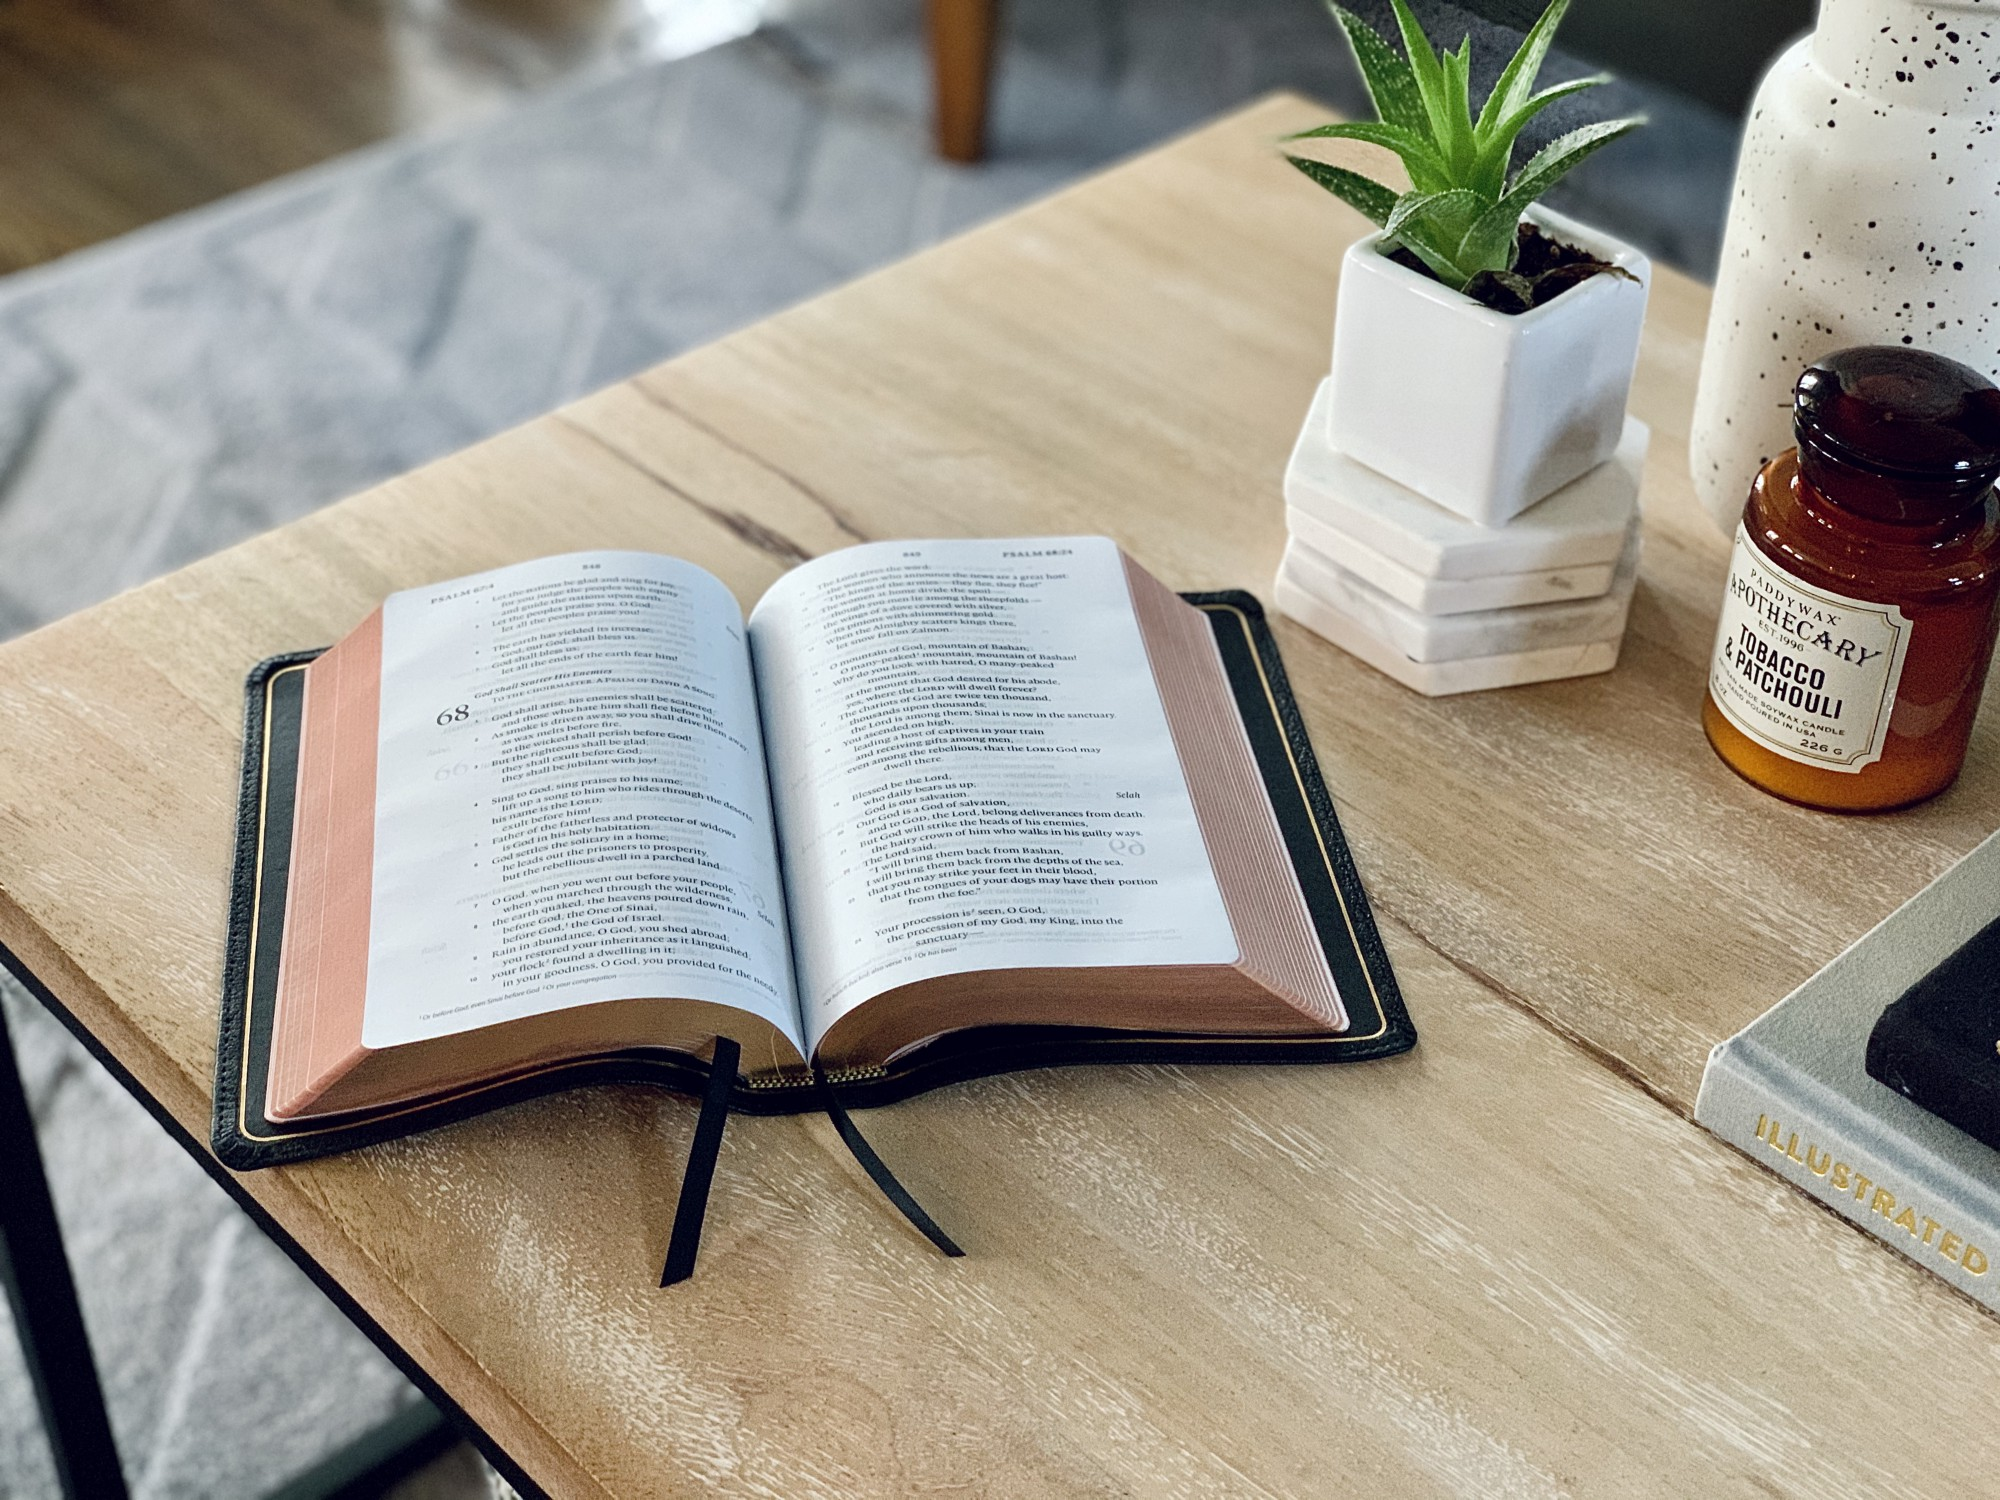 Spiritual practices can help us grow in our faith and grow closer to God